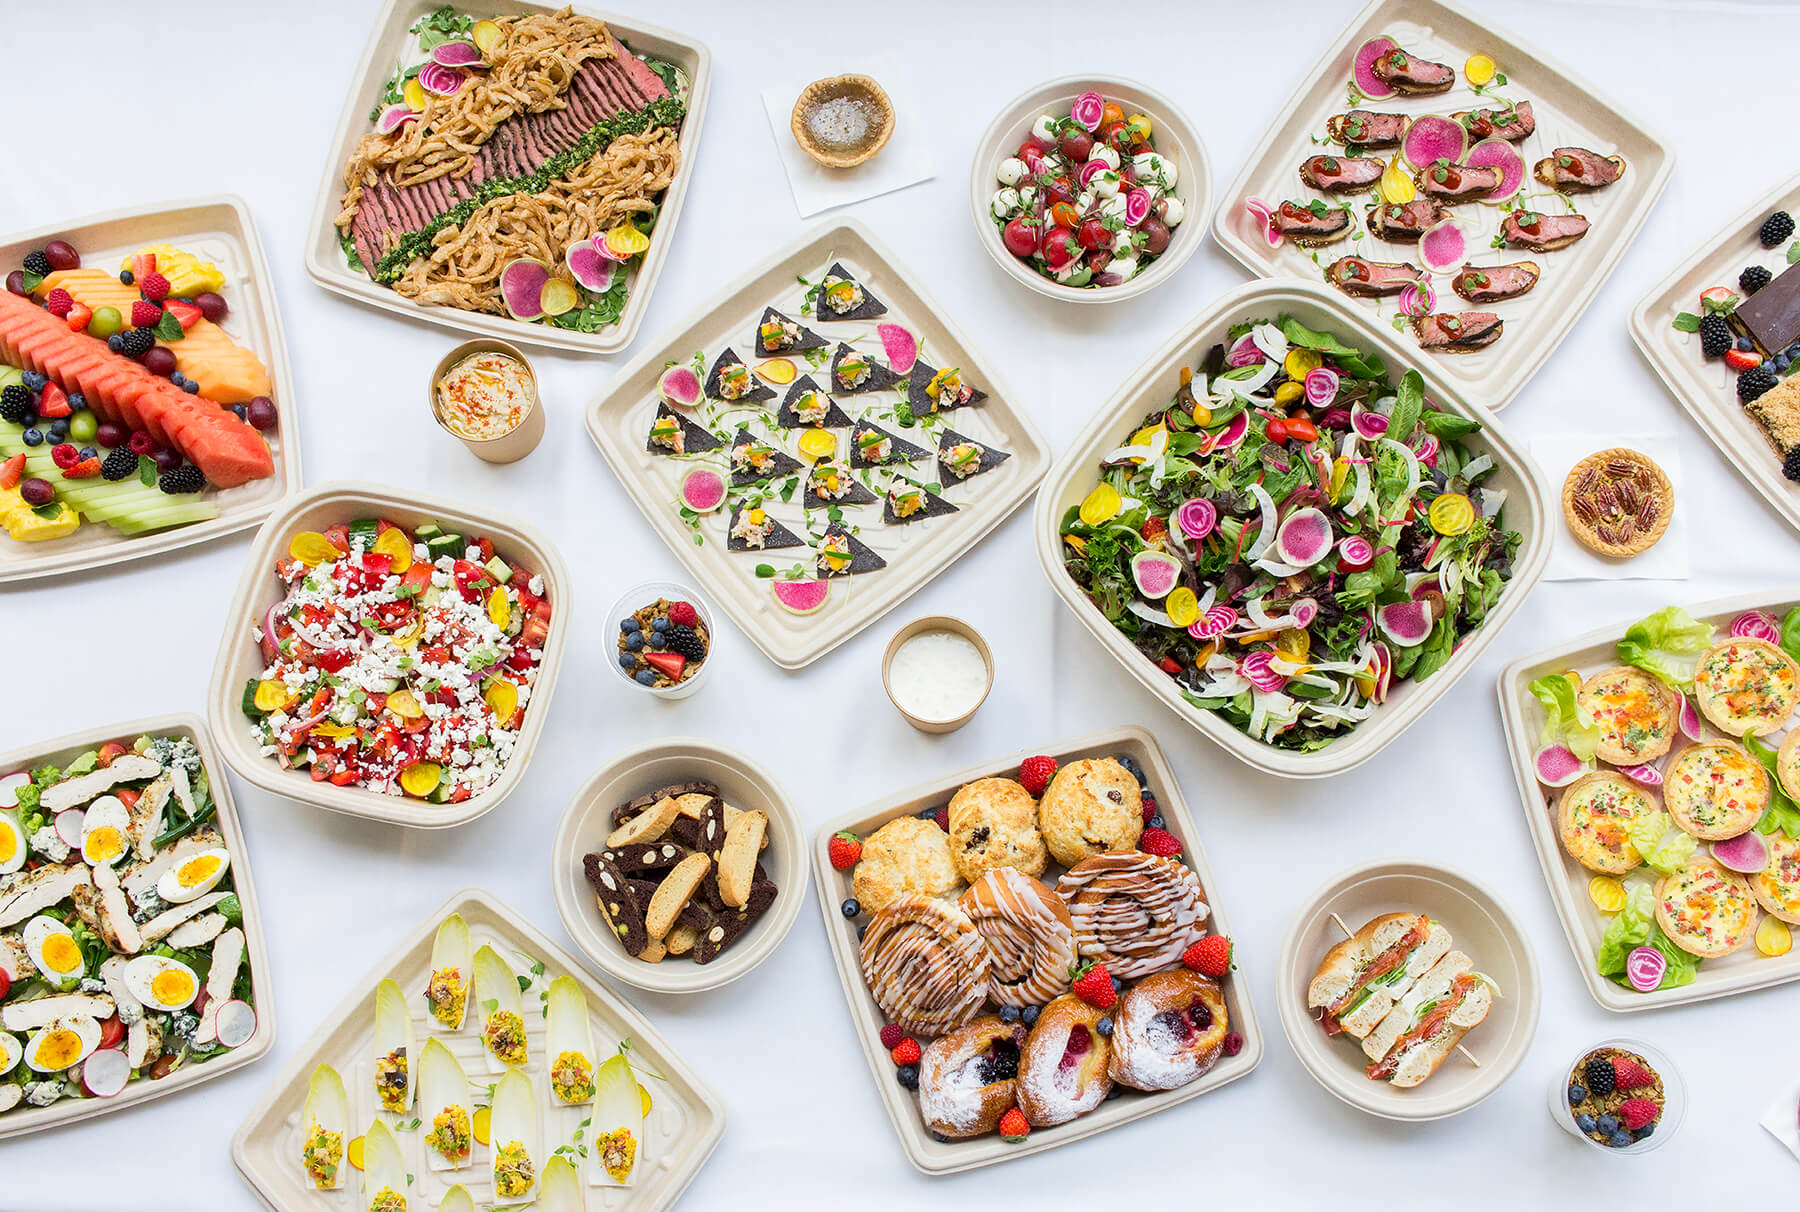 Office catering platters on a white table top